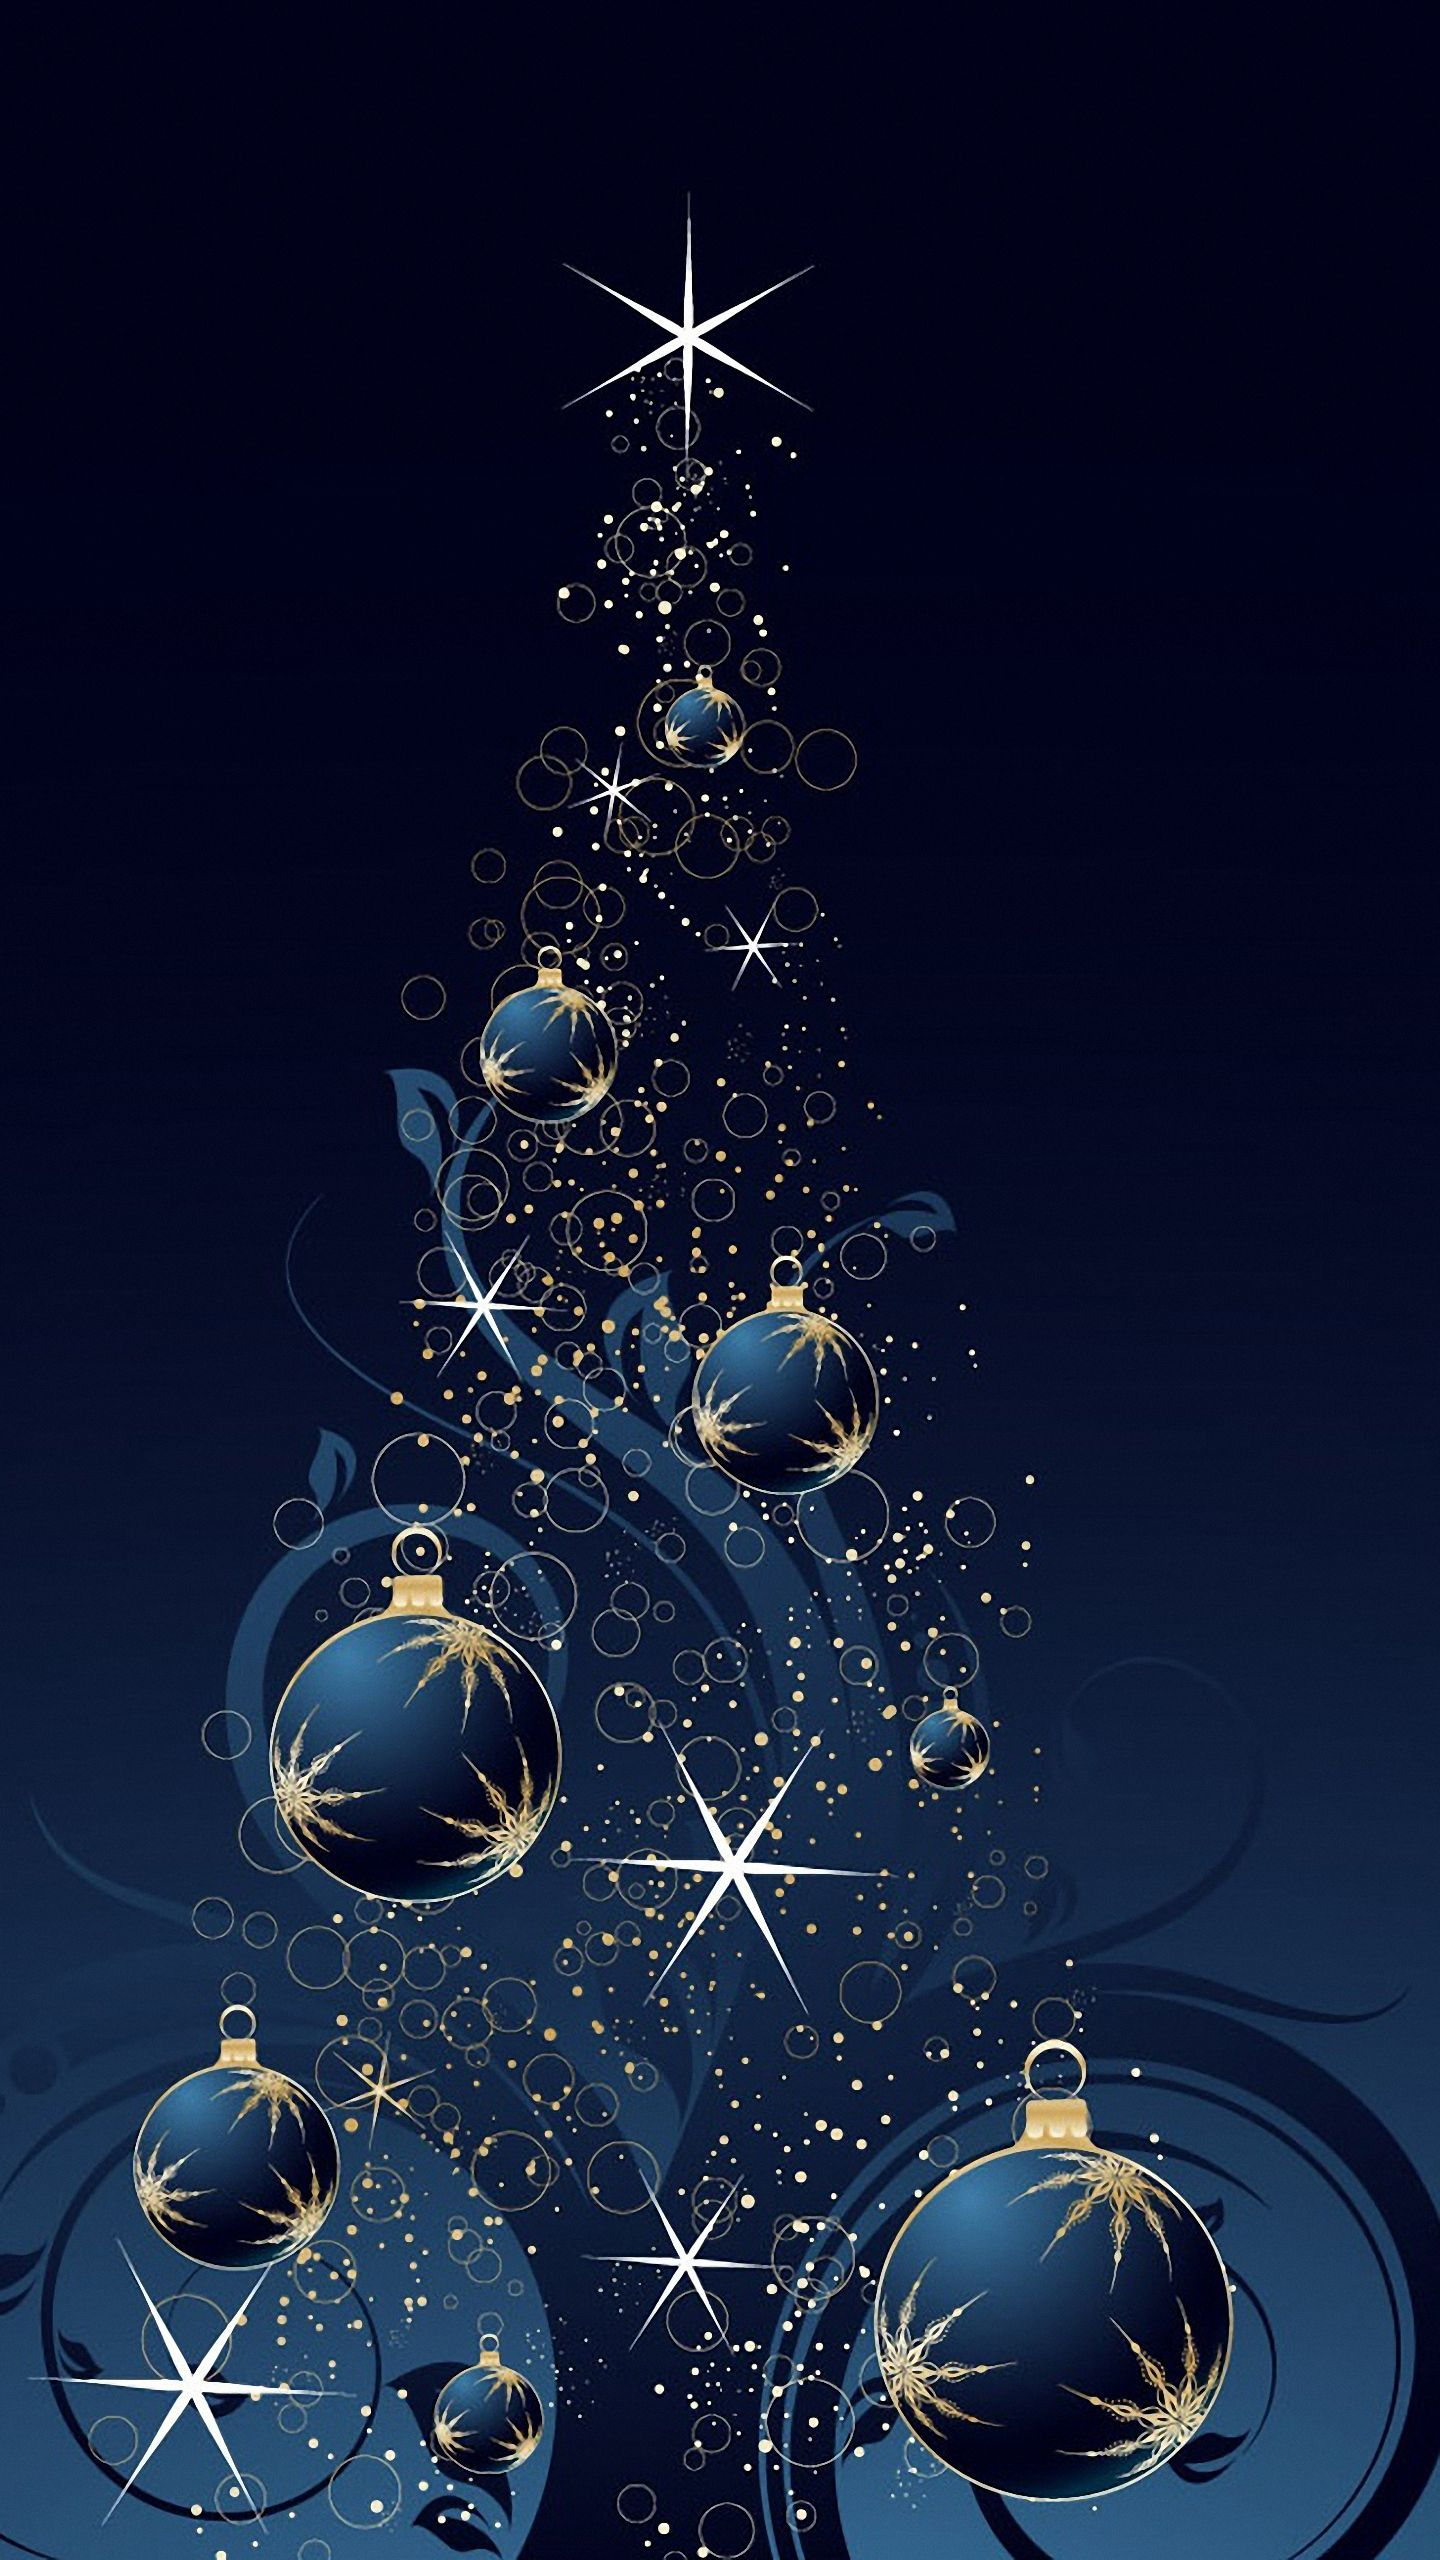 Samsung Galaxy Wallpaper Christmas download blue